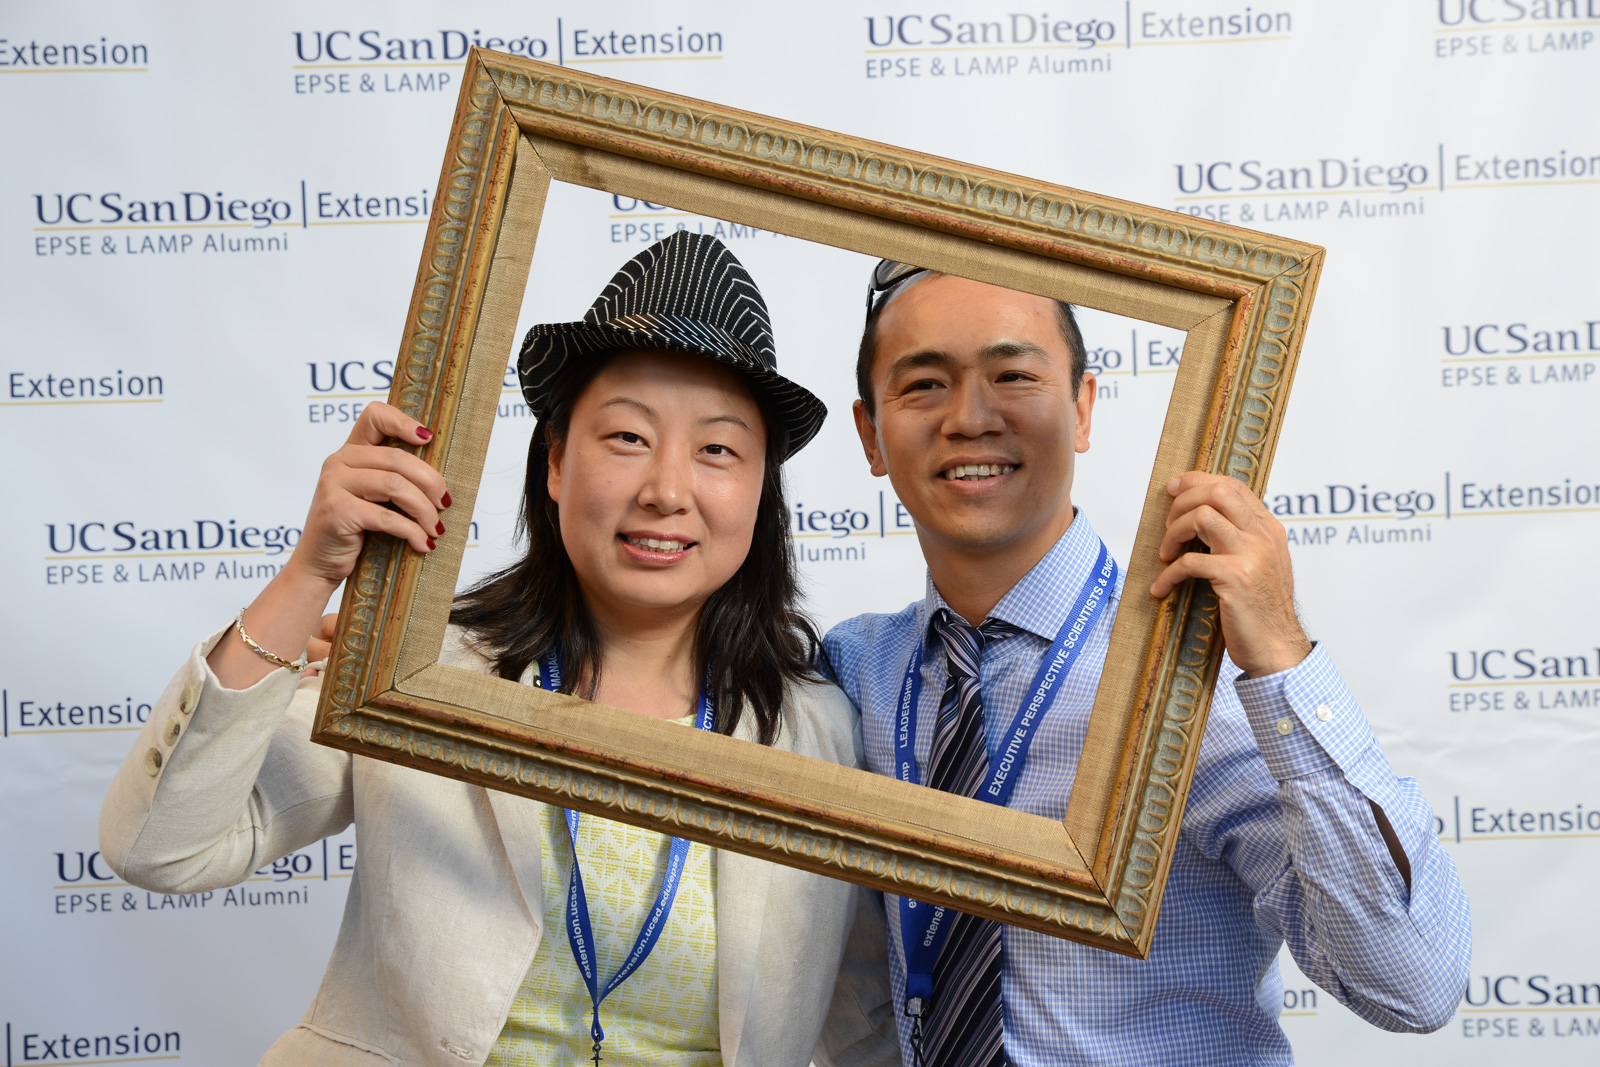 2015 EPSE-LAMP Graduation Photobooth